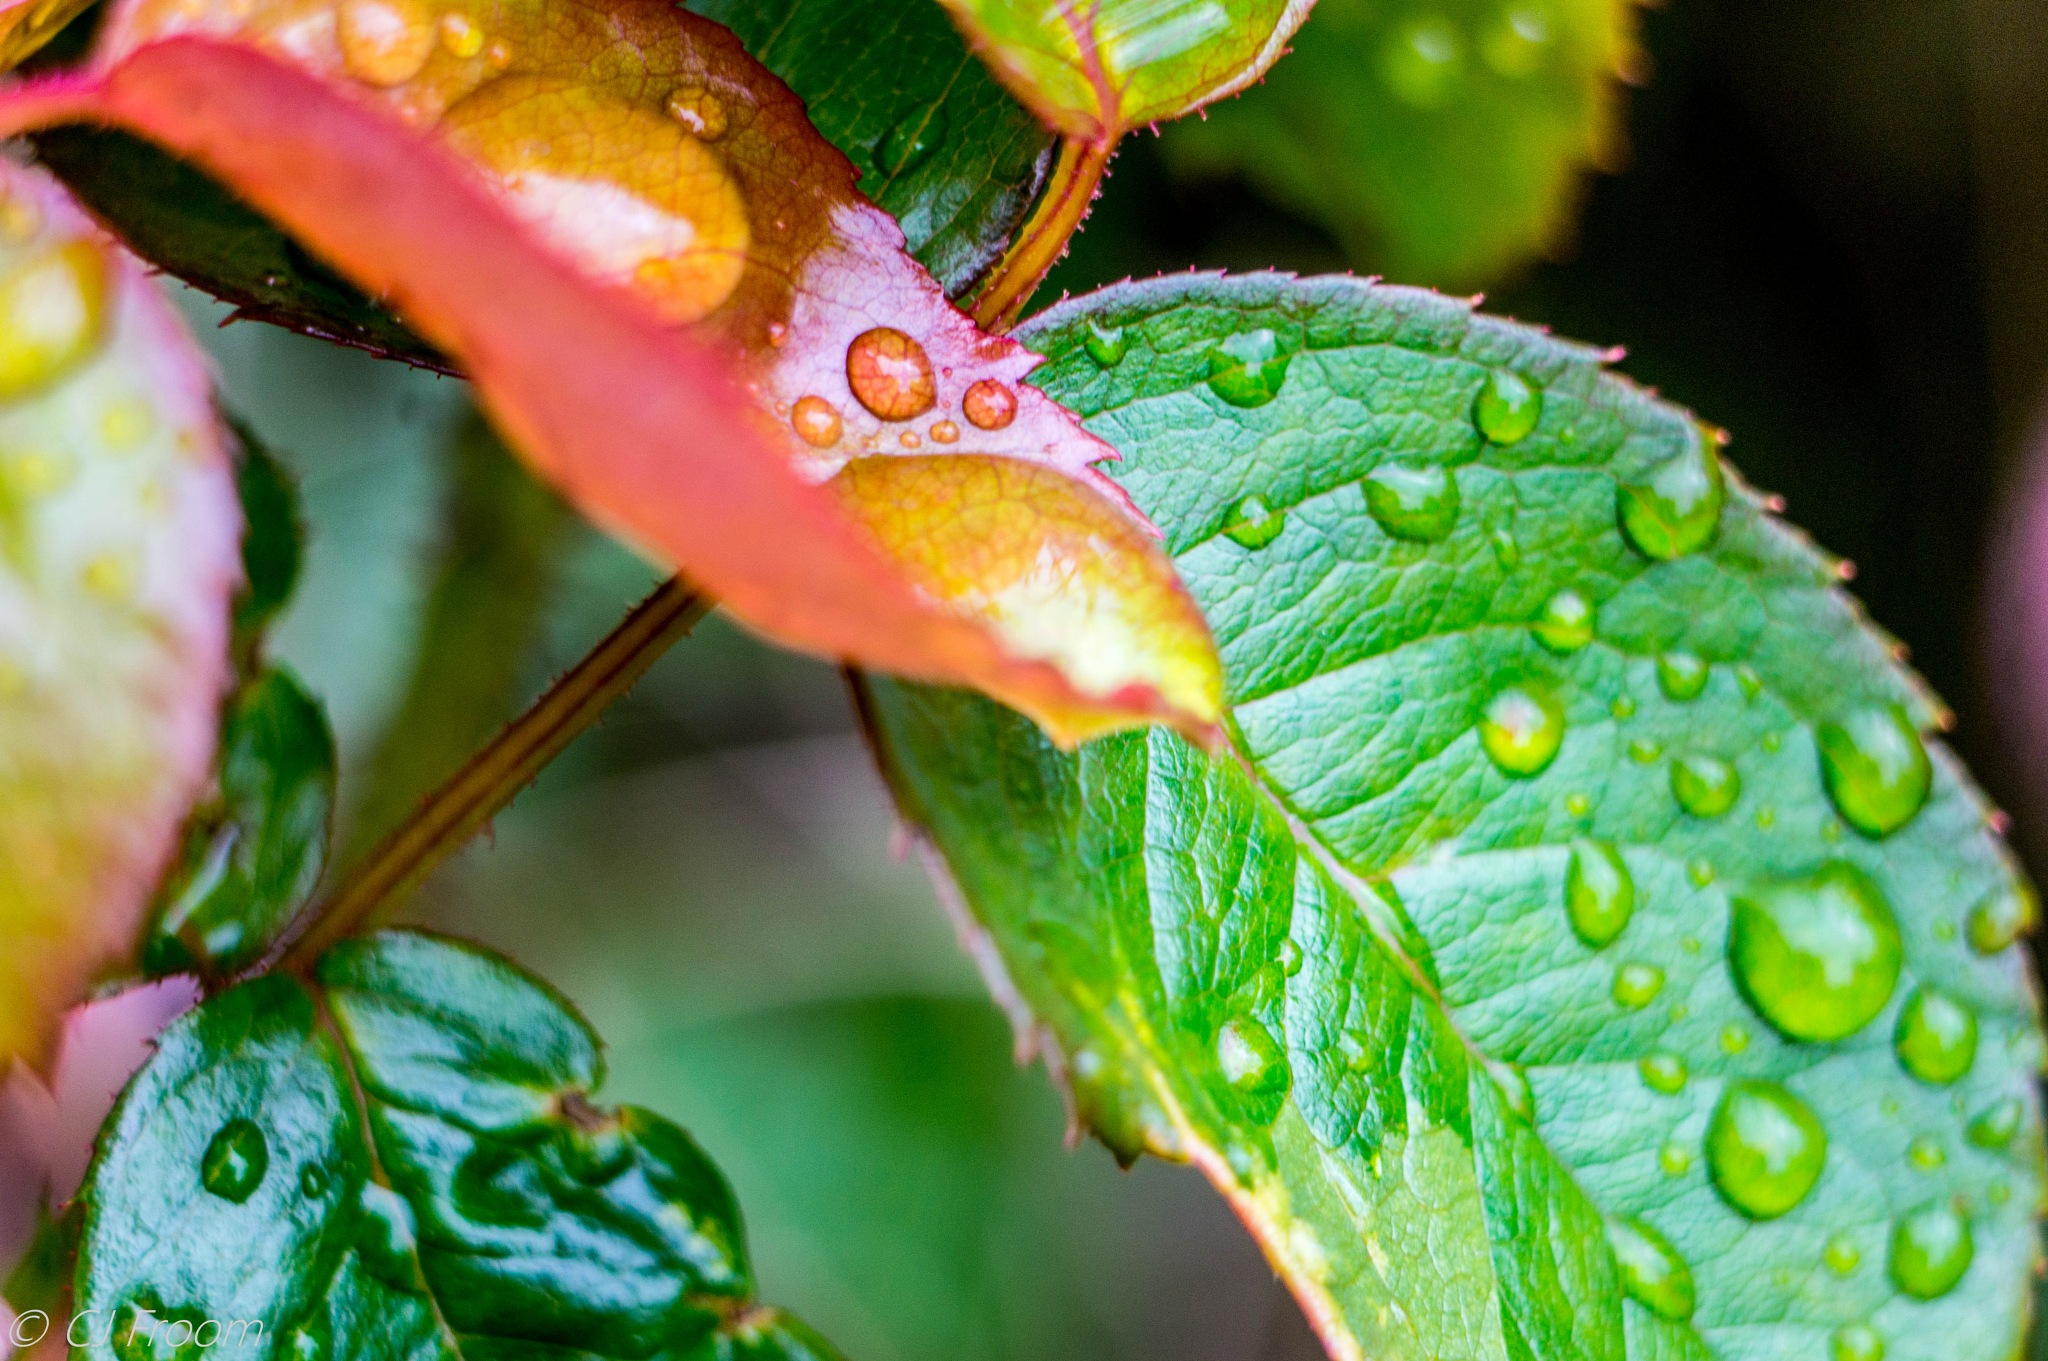 Raindrops on the leaves. by Cj Froom